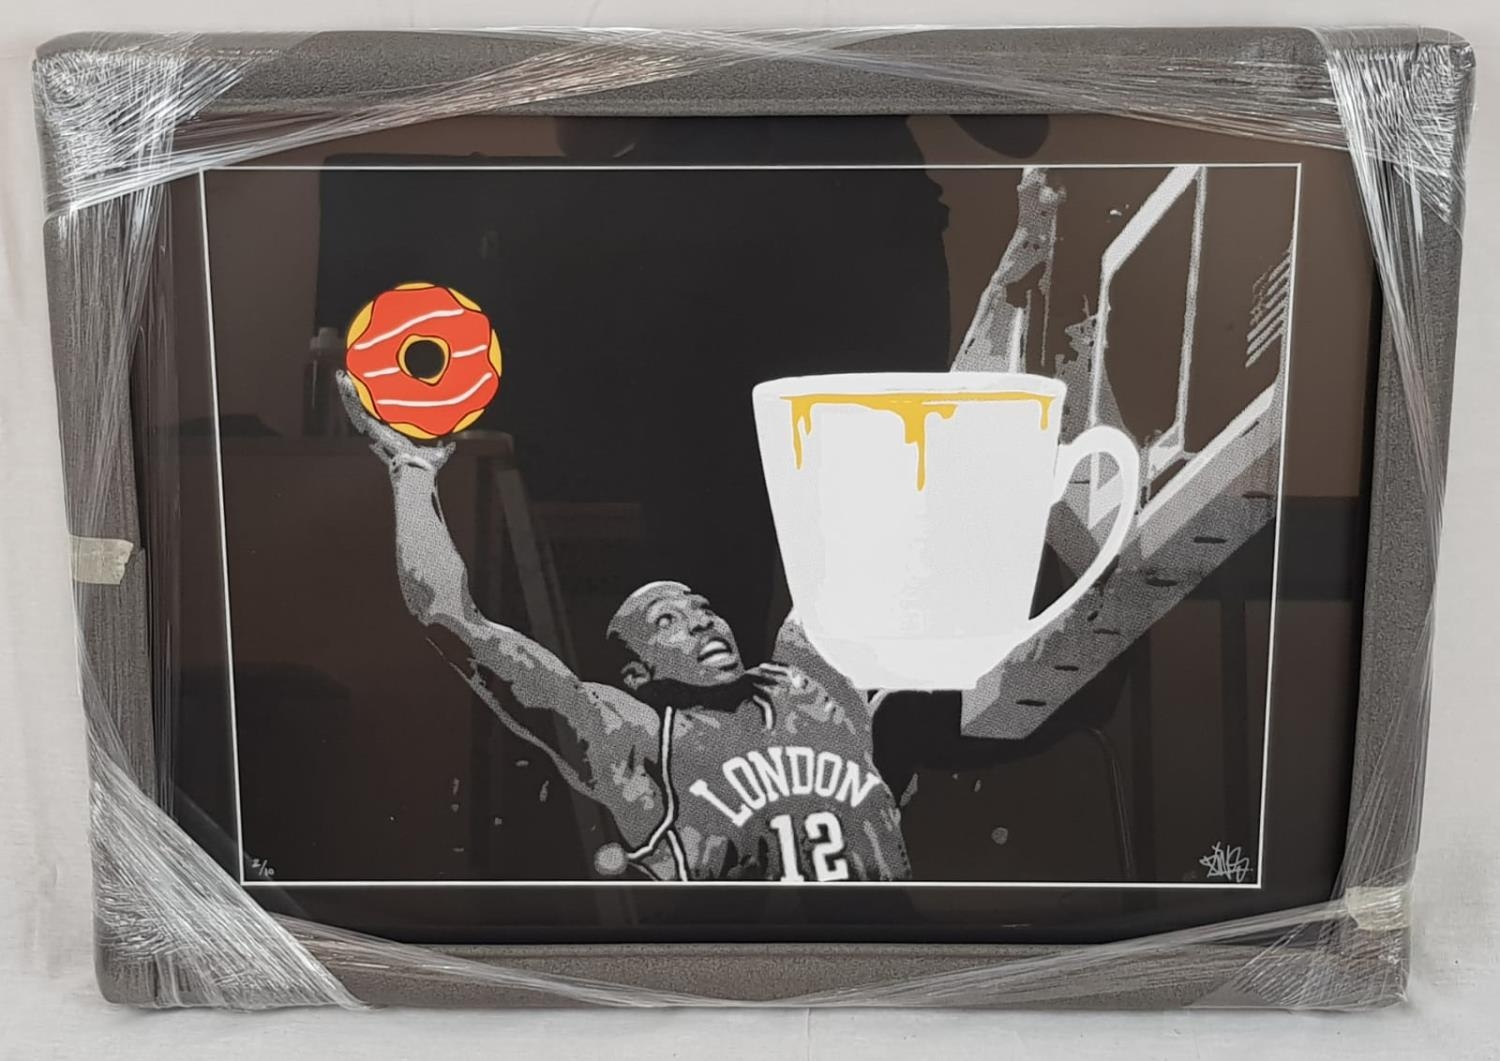 Just Dunk it! by Pins. A limited edition print (2 of 10) by British urban artist Pins. Signed back